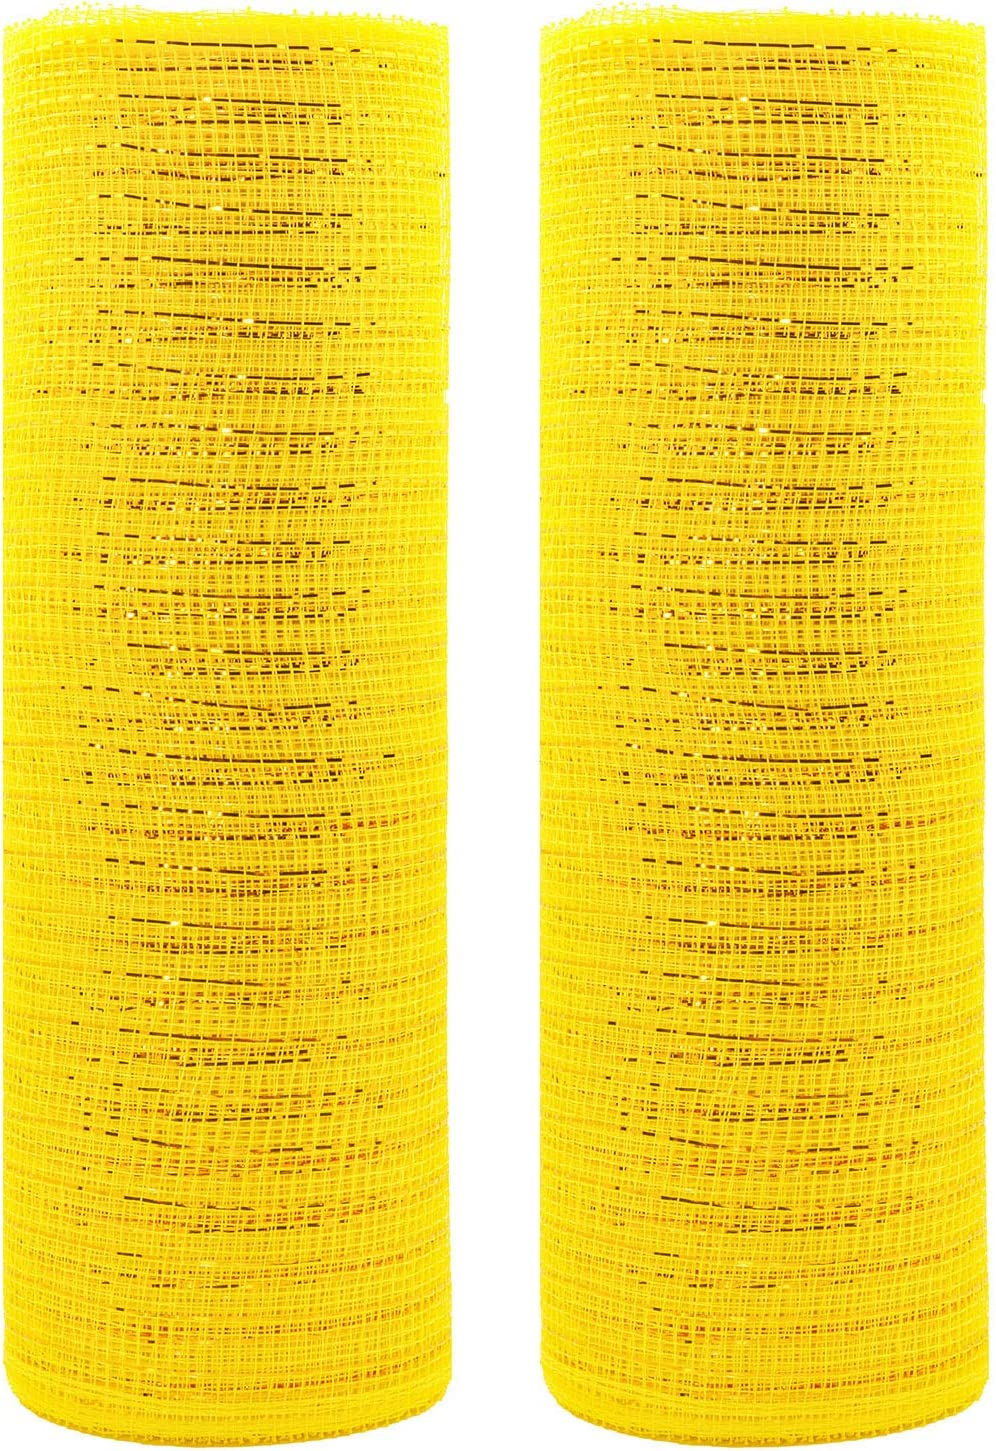 Acekit Deco Poly Mesh Ribbon with Metallic Foil 10 inch x 30 feet Each Roll for Wreaths, Swags Bows Wrapping and Decorating Projects-2 Rolls(Yellow+Yellow)